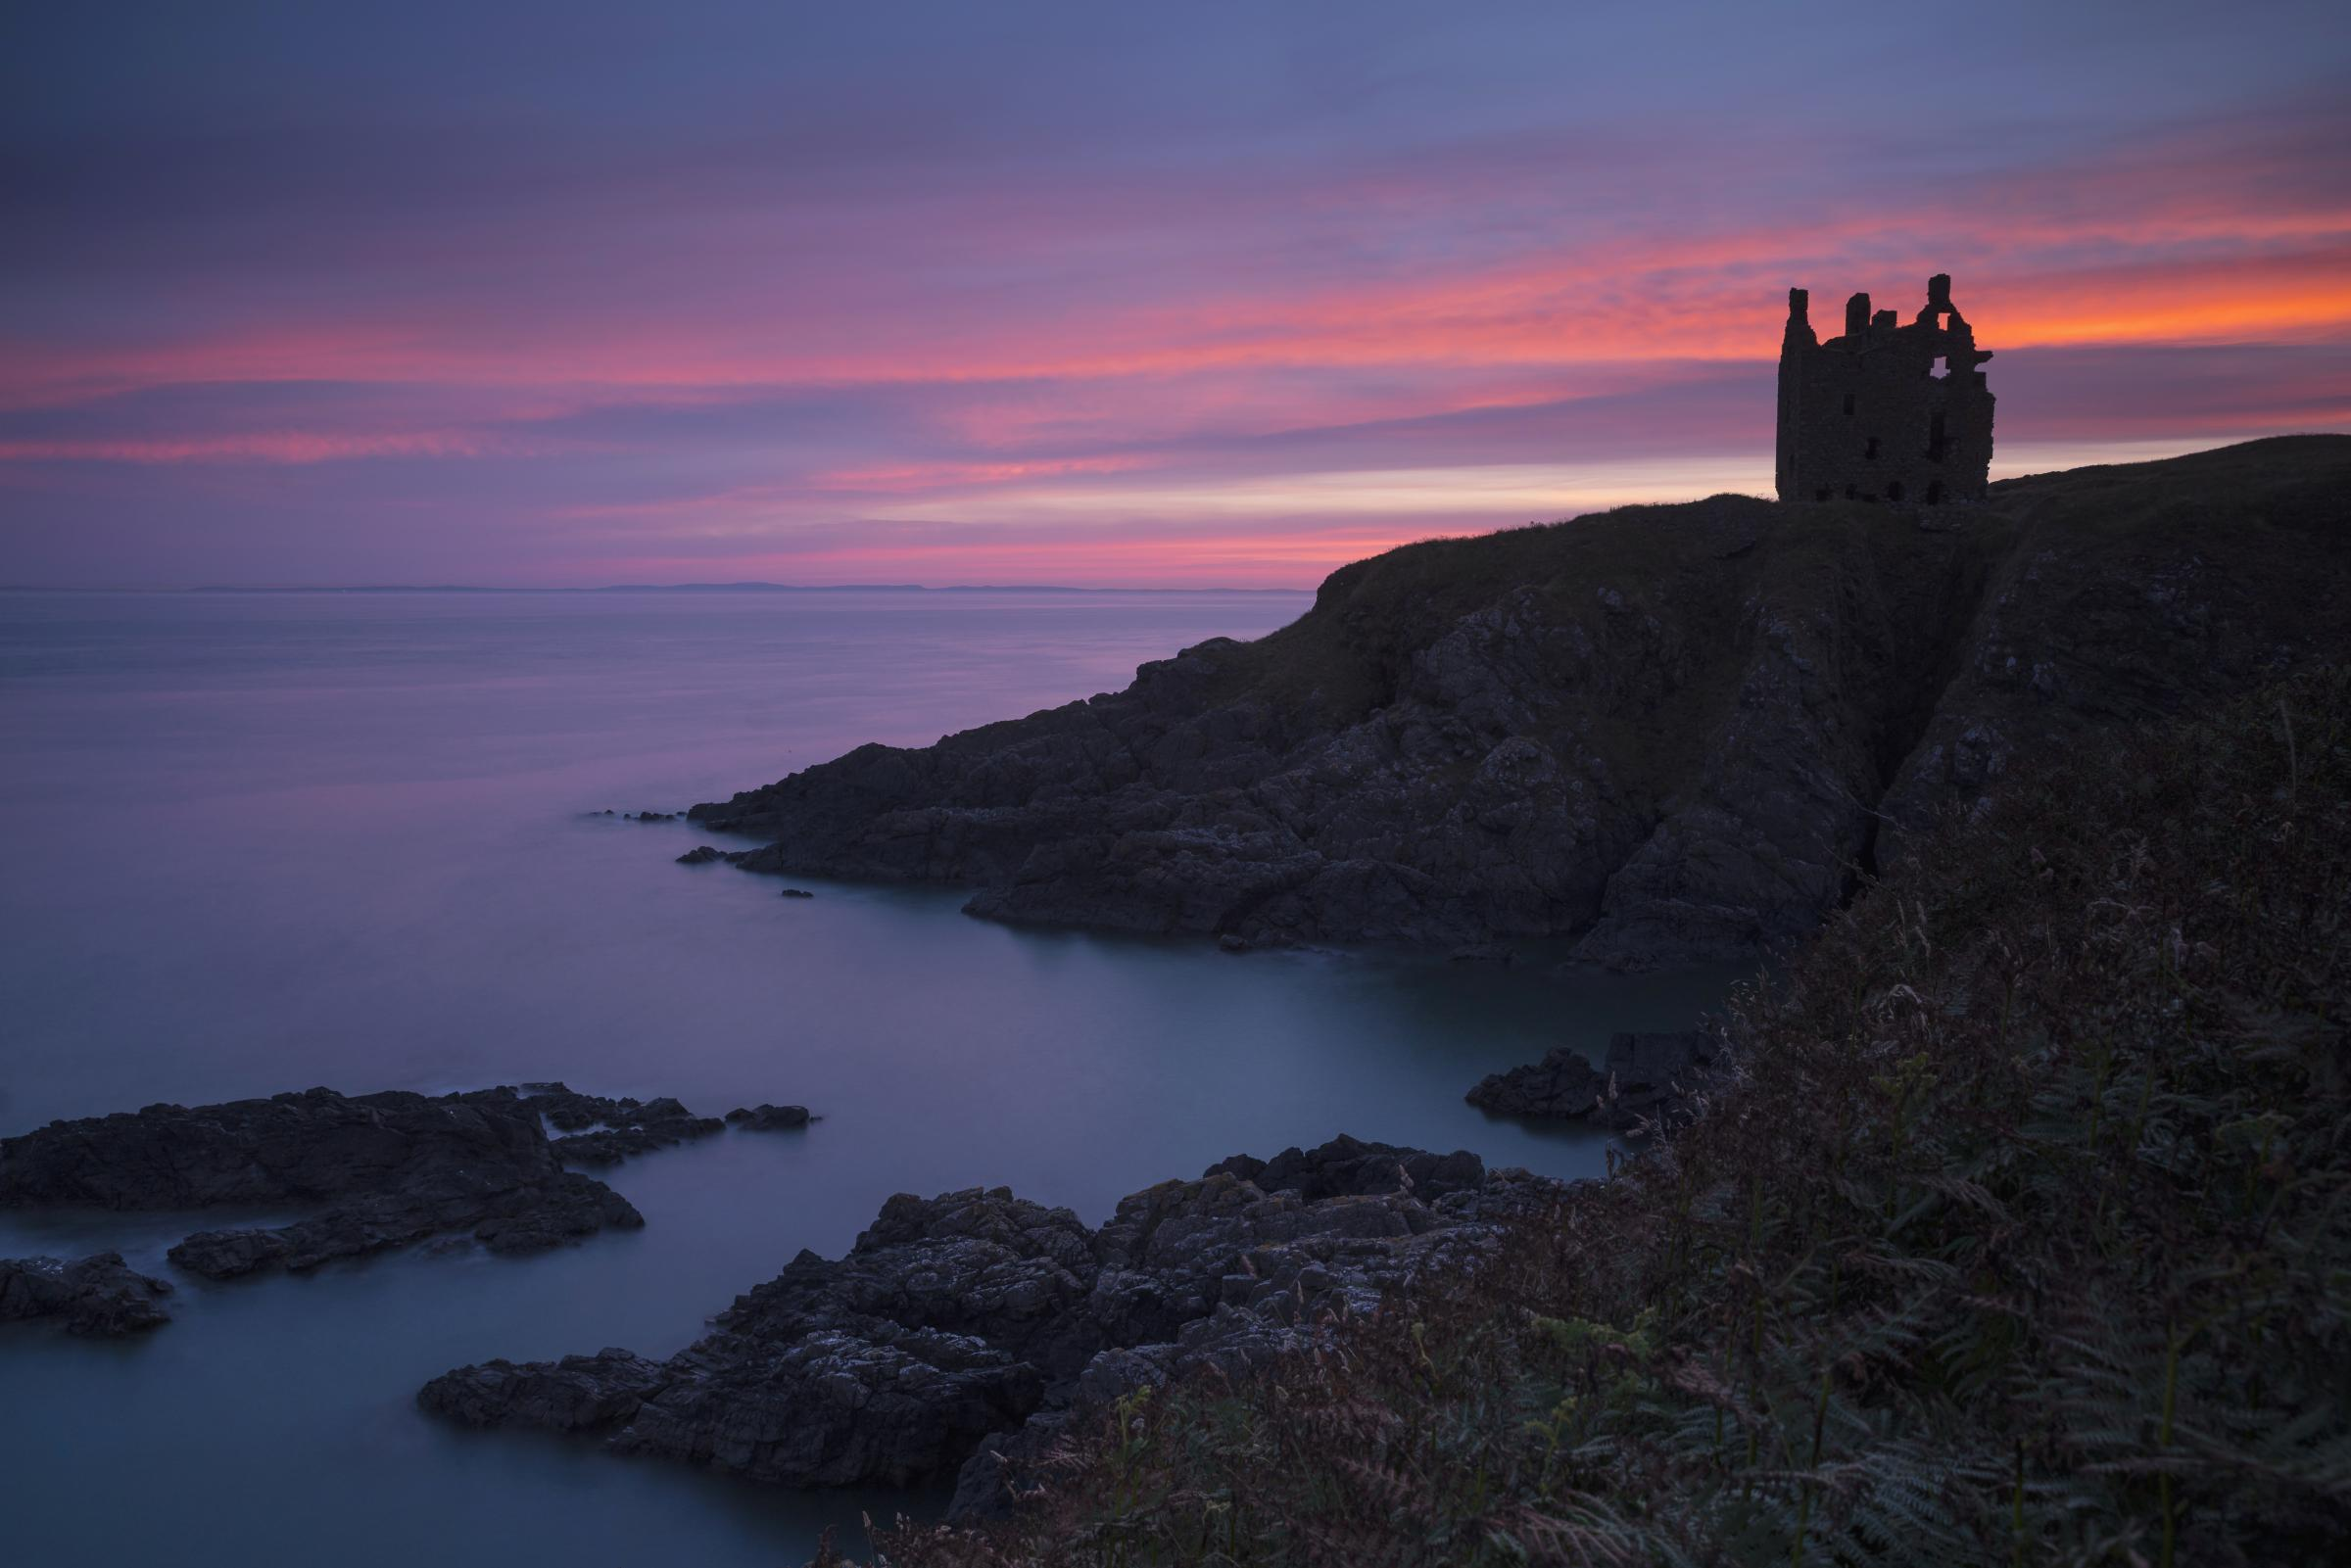 Dunskey Castle, perched on a rocky cliff above Portpatrick was built in the mid-16th century.